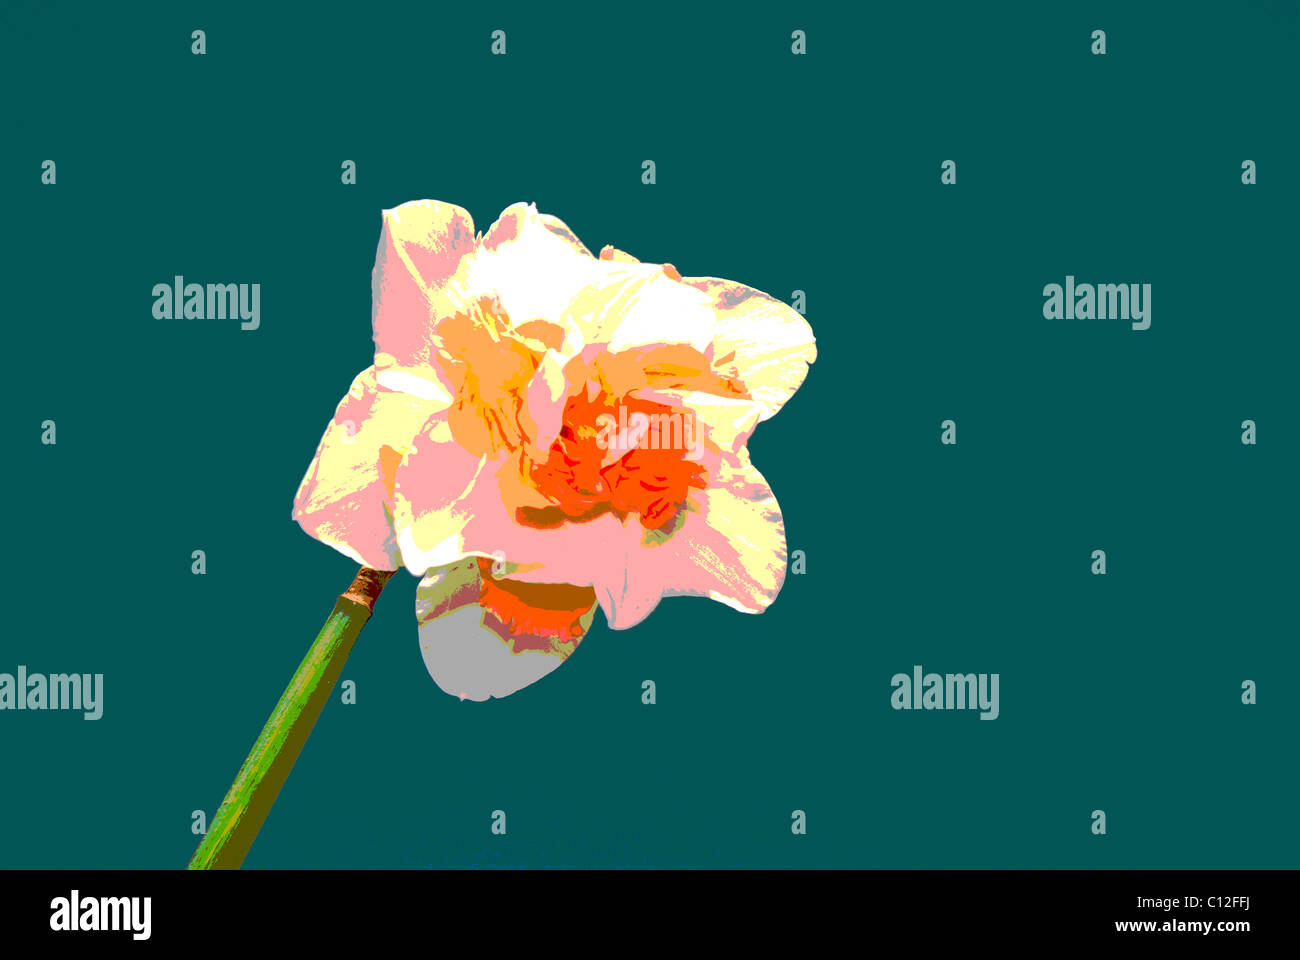 Posterized Stock Photos & Posterized Stock Images - Alamy